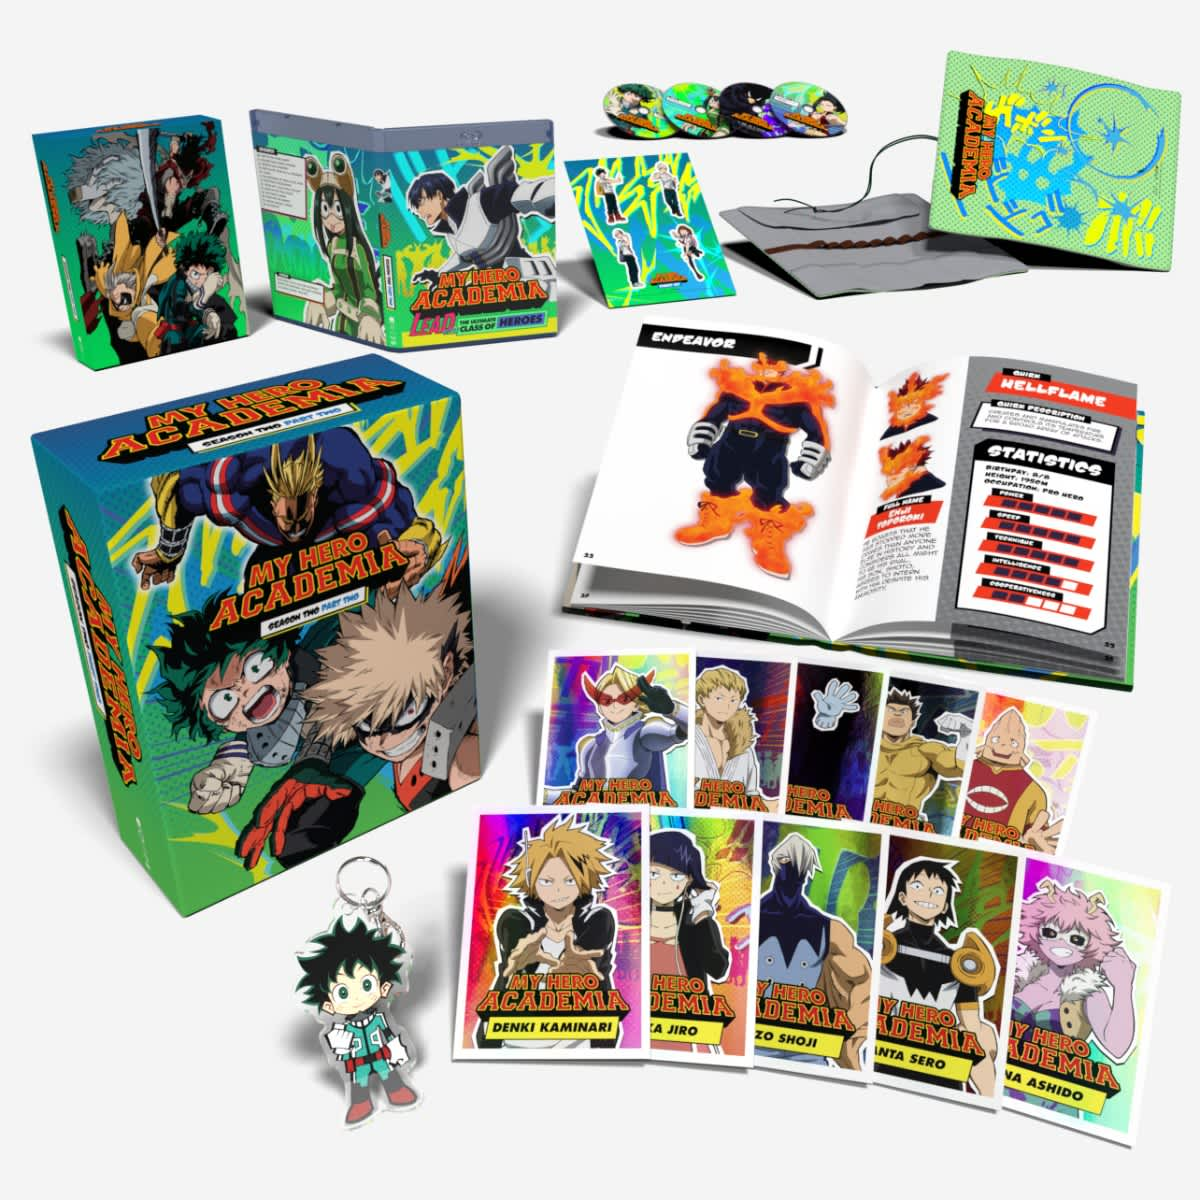 My Hero Academia Season 2 Part 2 Limited Edition Blu-Ray/DVD